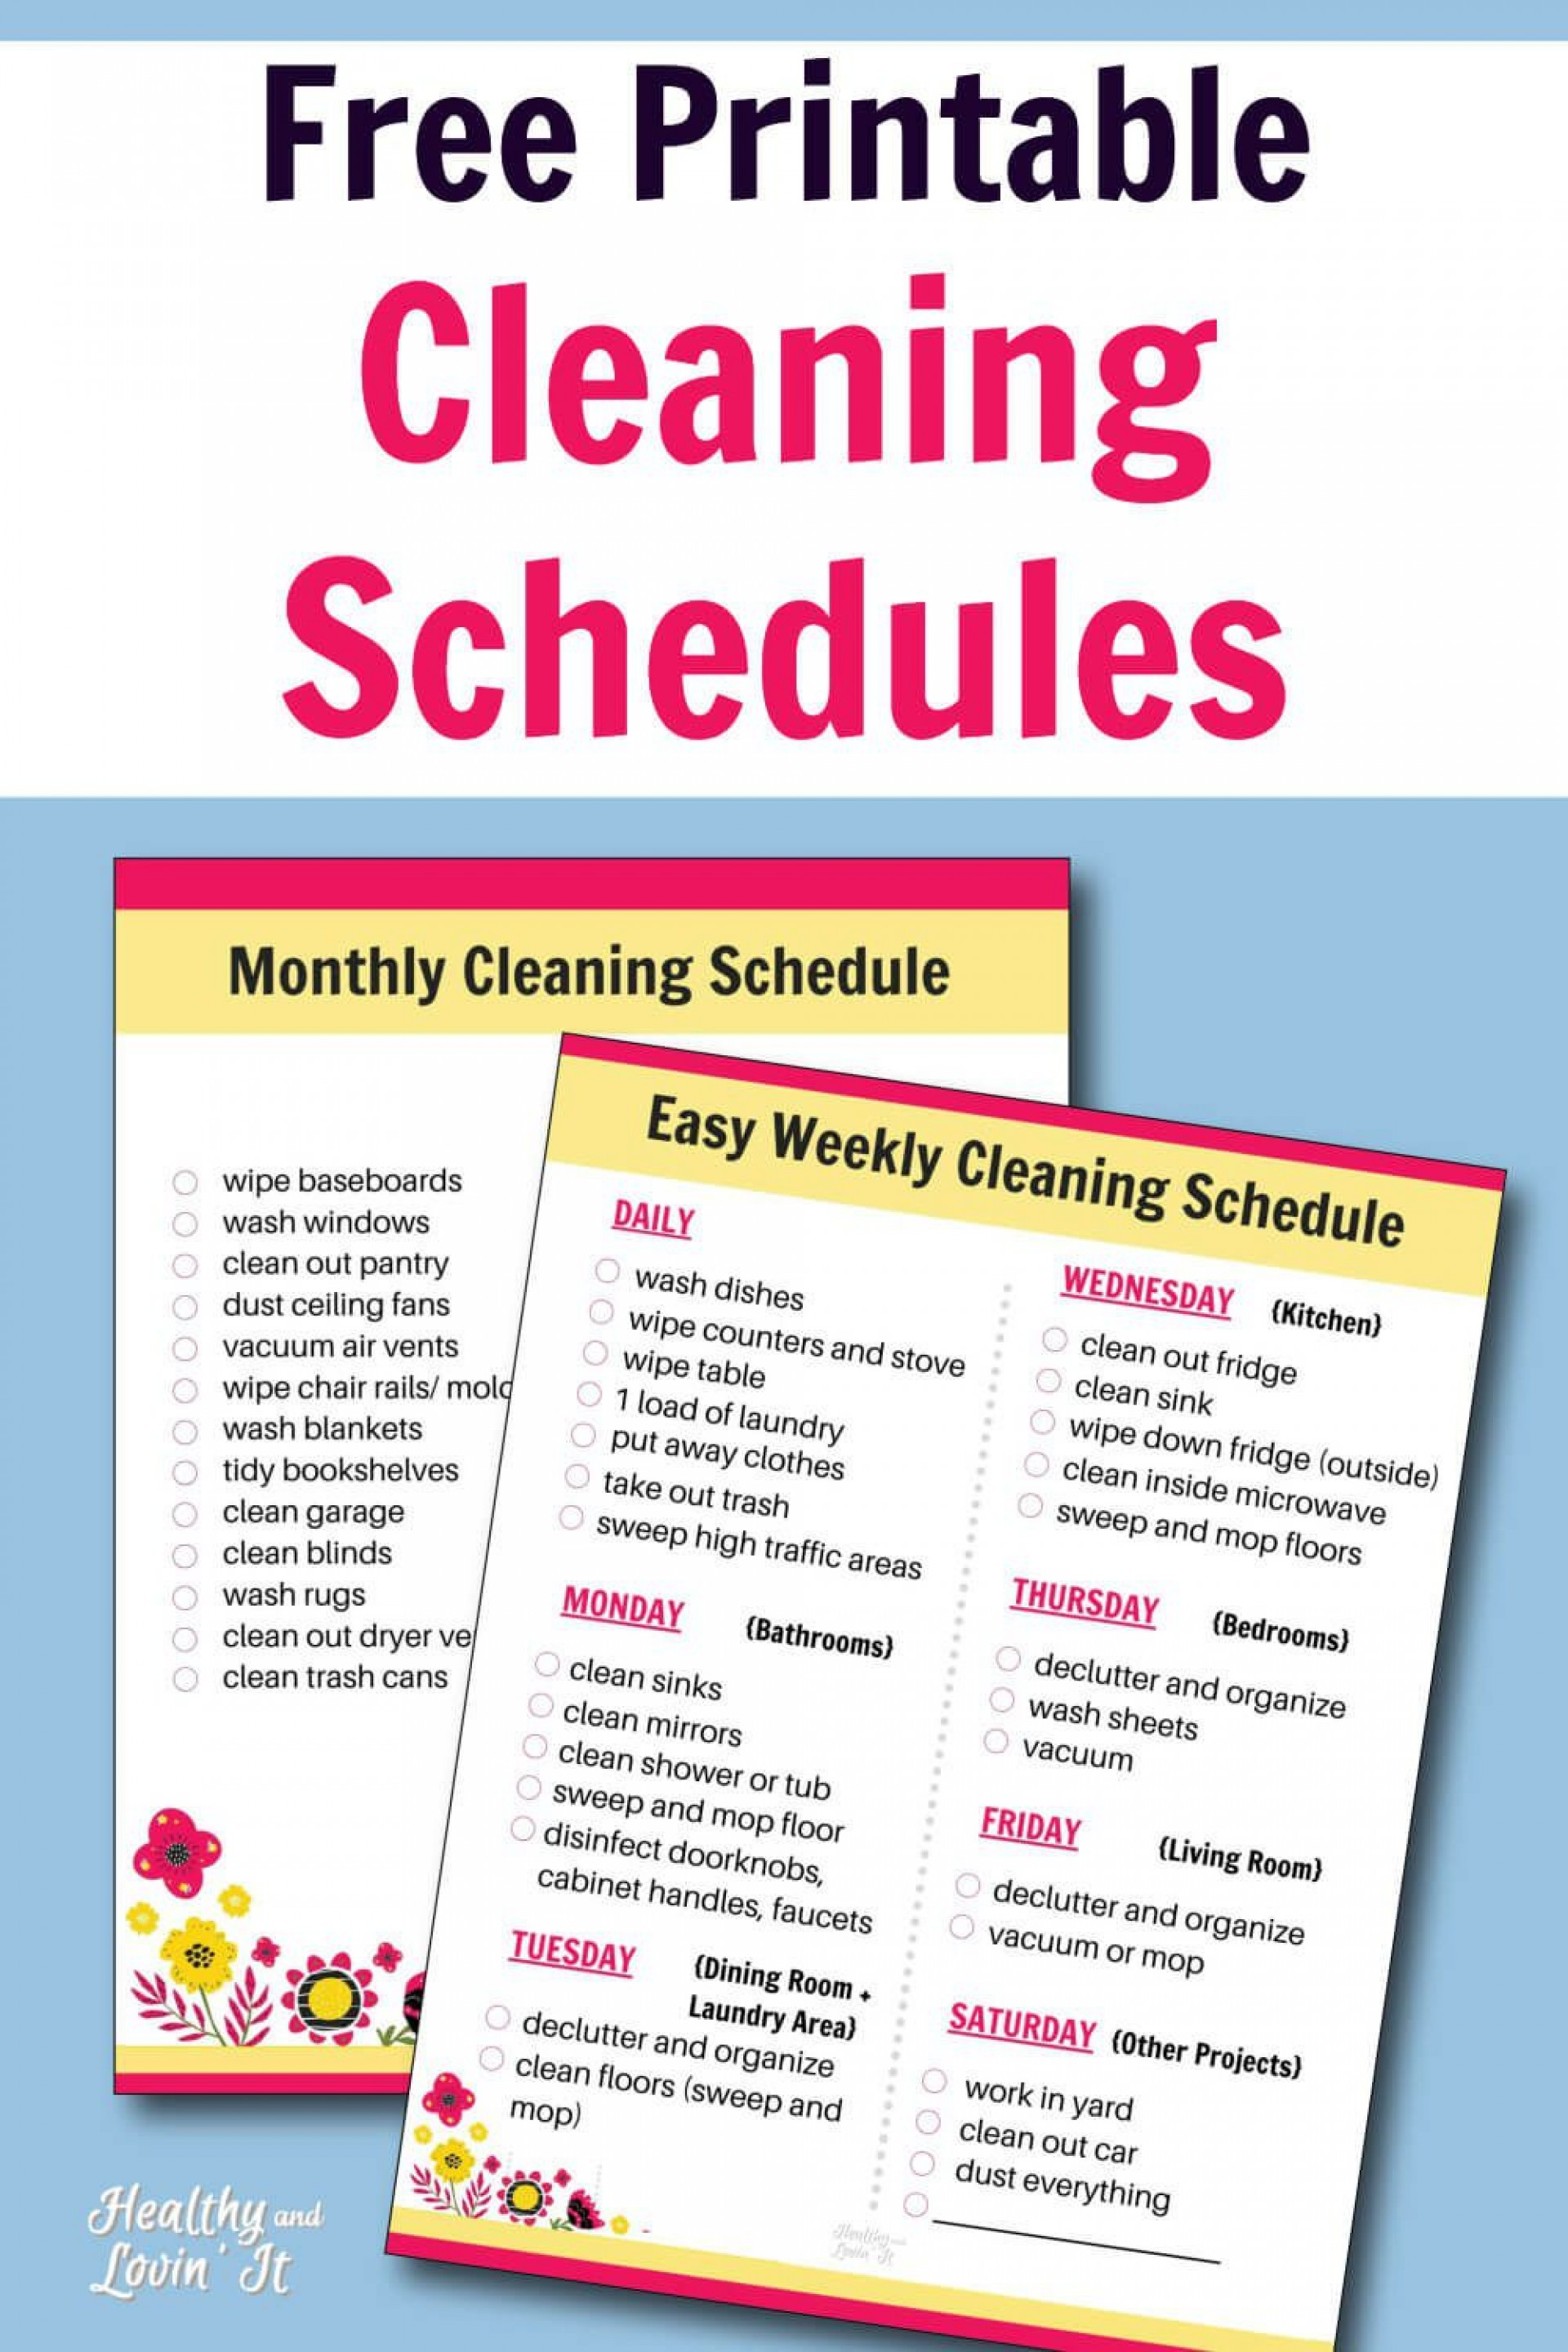 007 Shocking Free Printable Weekly Cleaning Schedule Template Highest Quality  Office1920